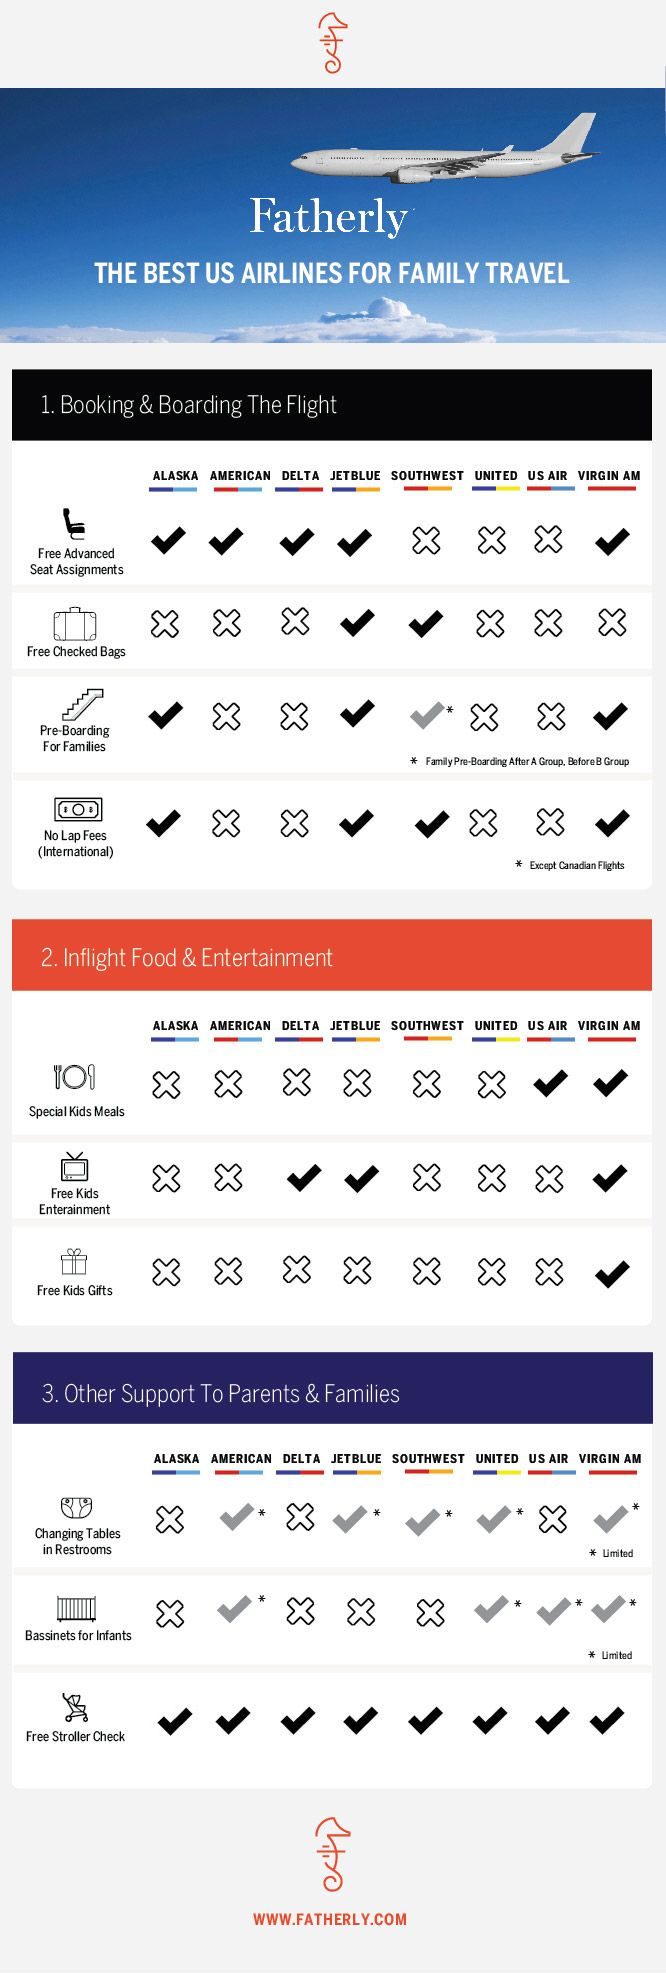 Flying with kids can be a nightmare, but some airlines make it less stressful by being family-friendly (or at least more family-friendly than the other carriers). Here's a chart from Fatherly comparing airlines' features. And if you're not traveling with kids, well...maybe avoid the more family friendly airlines. :P